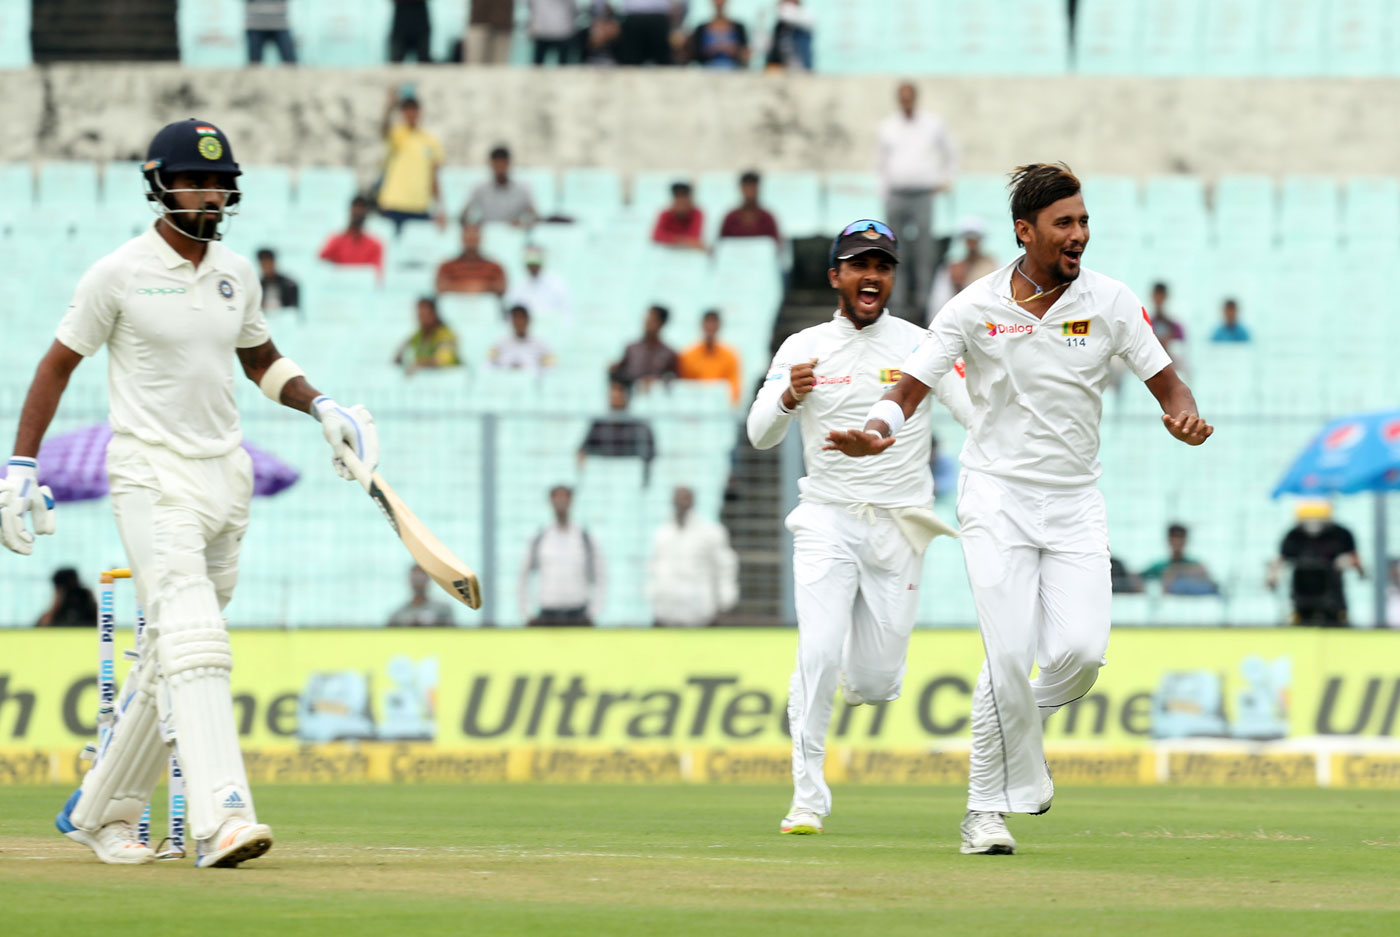 IND vs SL, 1st Test: We Are Happy To Play On Wickets Like This: Sanjay Bangar